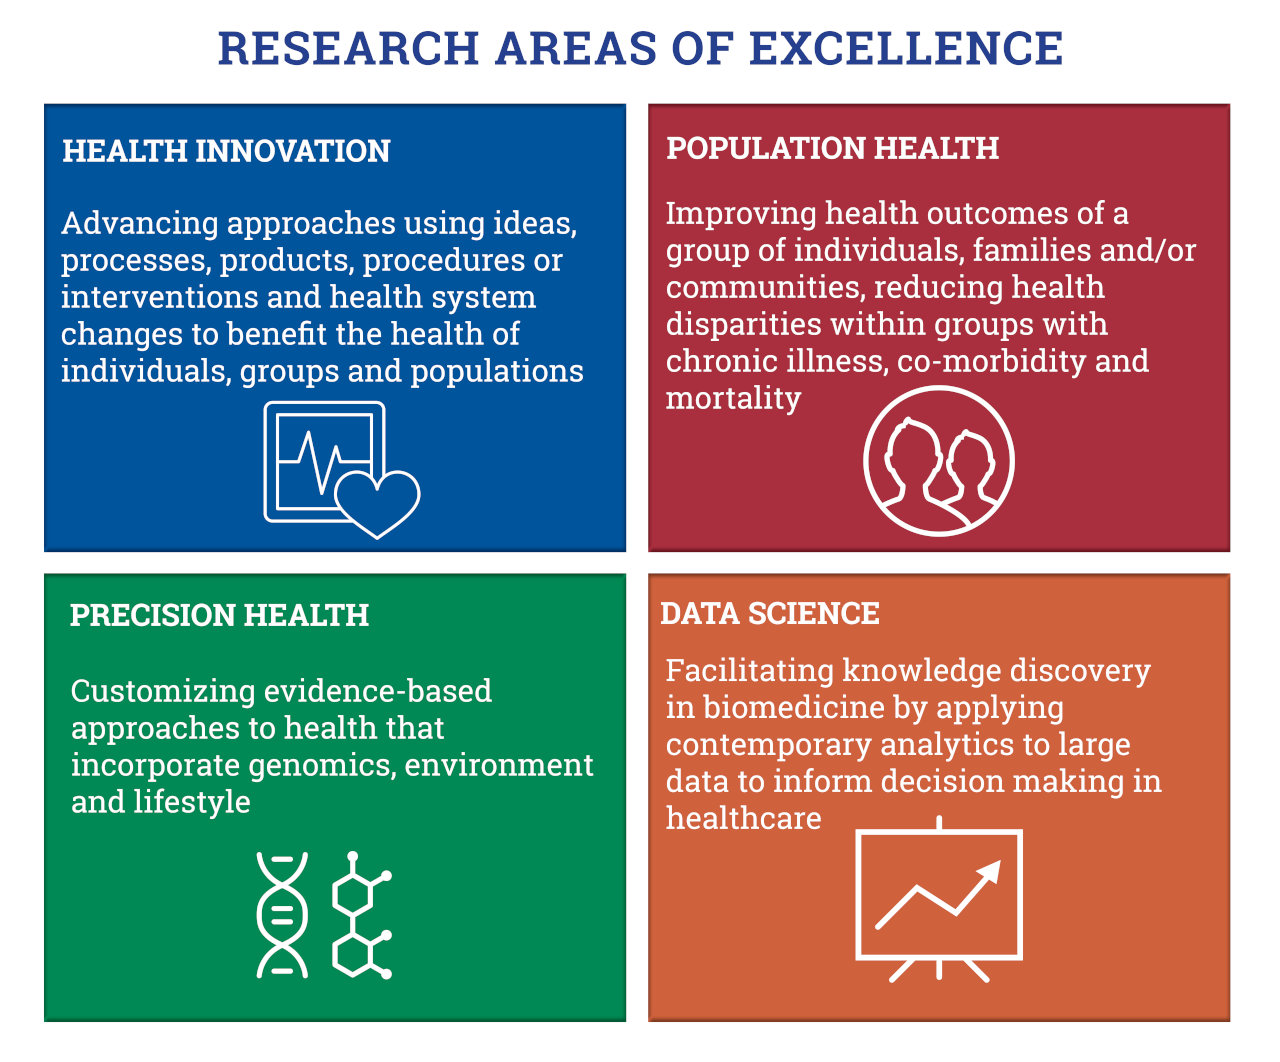 Research Areas of Excellence graphic